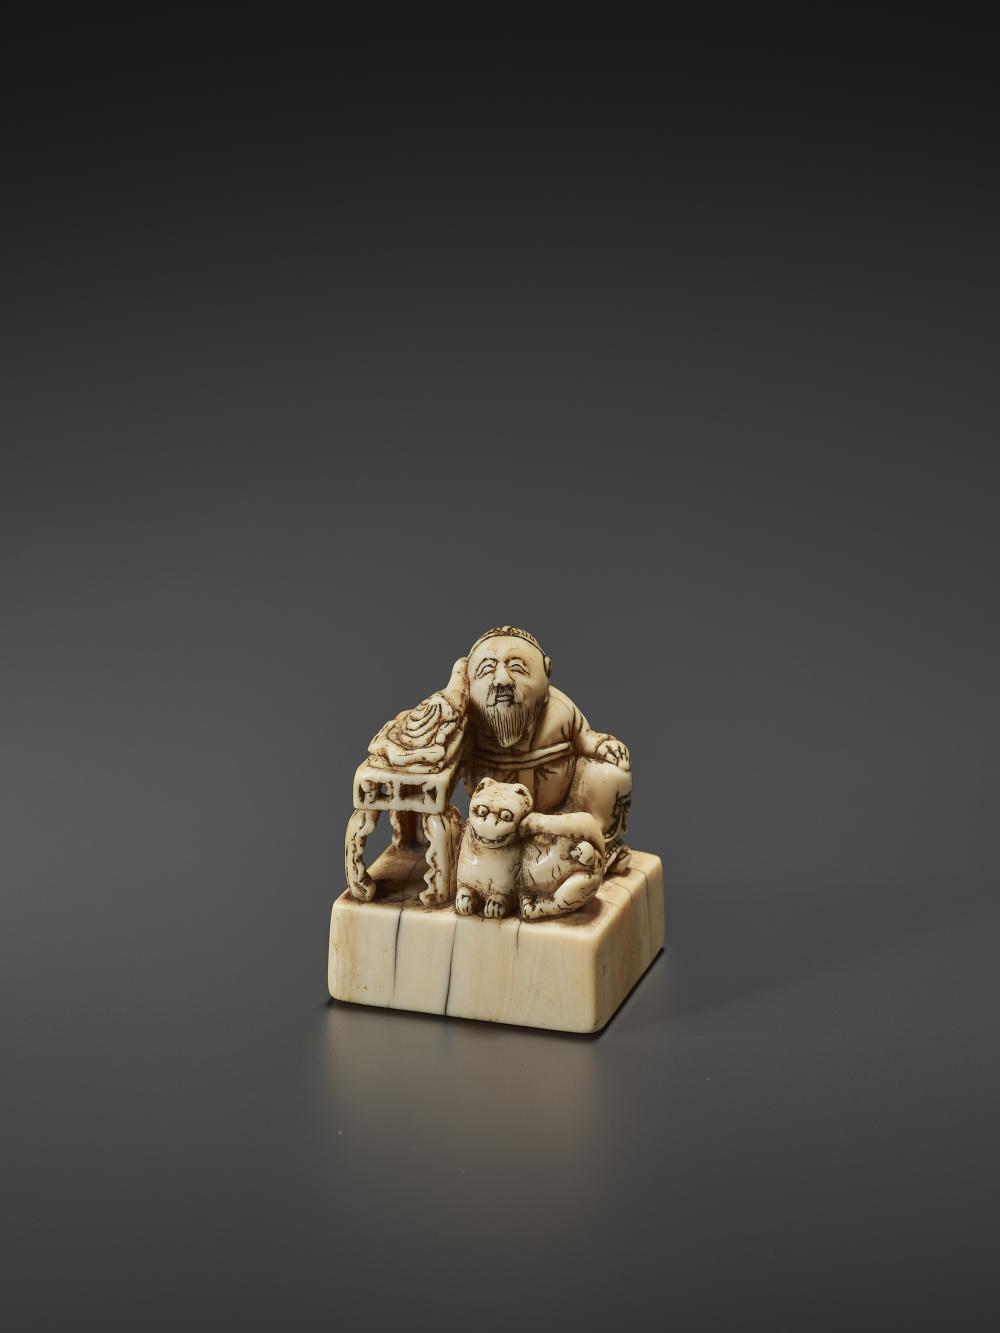 AN UNUSUAL AND EARLY IVORY NETSUKE OF A CHINESE SAGE WITH TIGER